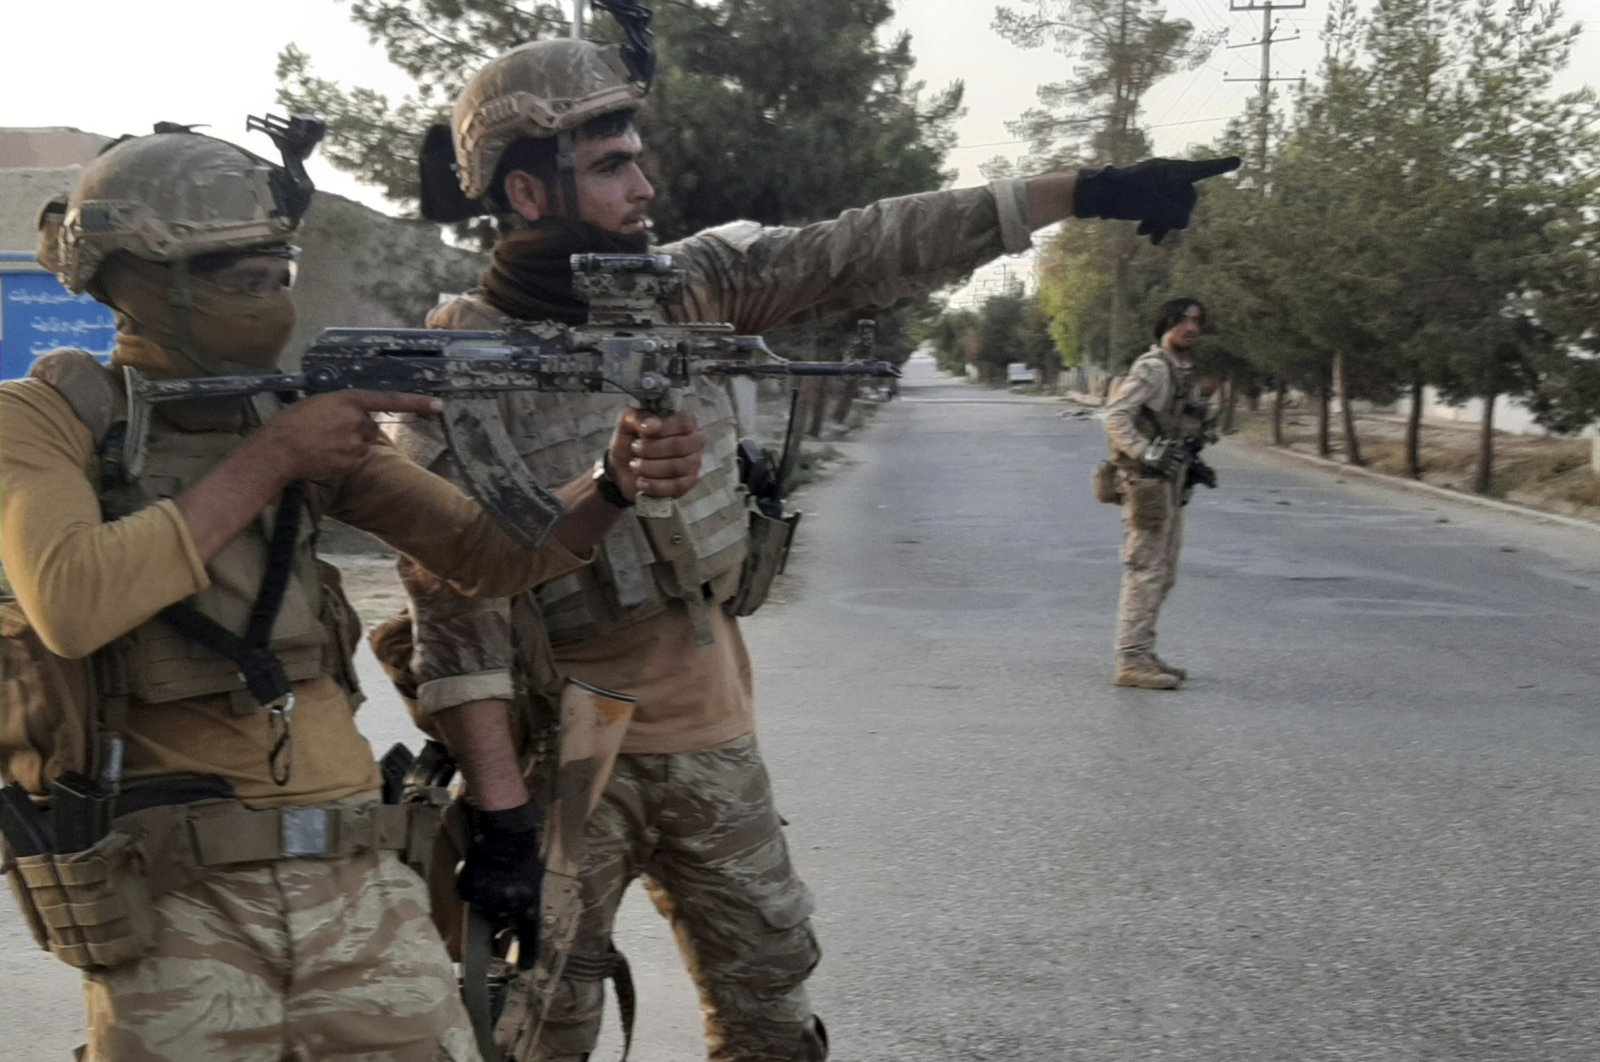 Afghan Special forces patrol a deserted street during fighting with Taliban fighters, in Lashkar Gah, Helmand province, southern Afghanistan, Aug. 3, 2021. (AP Photo)